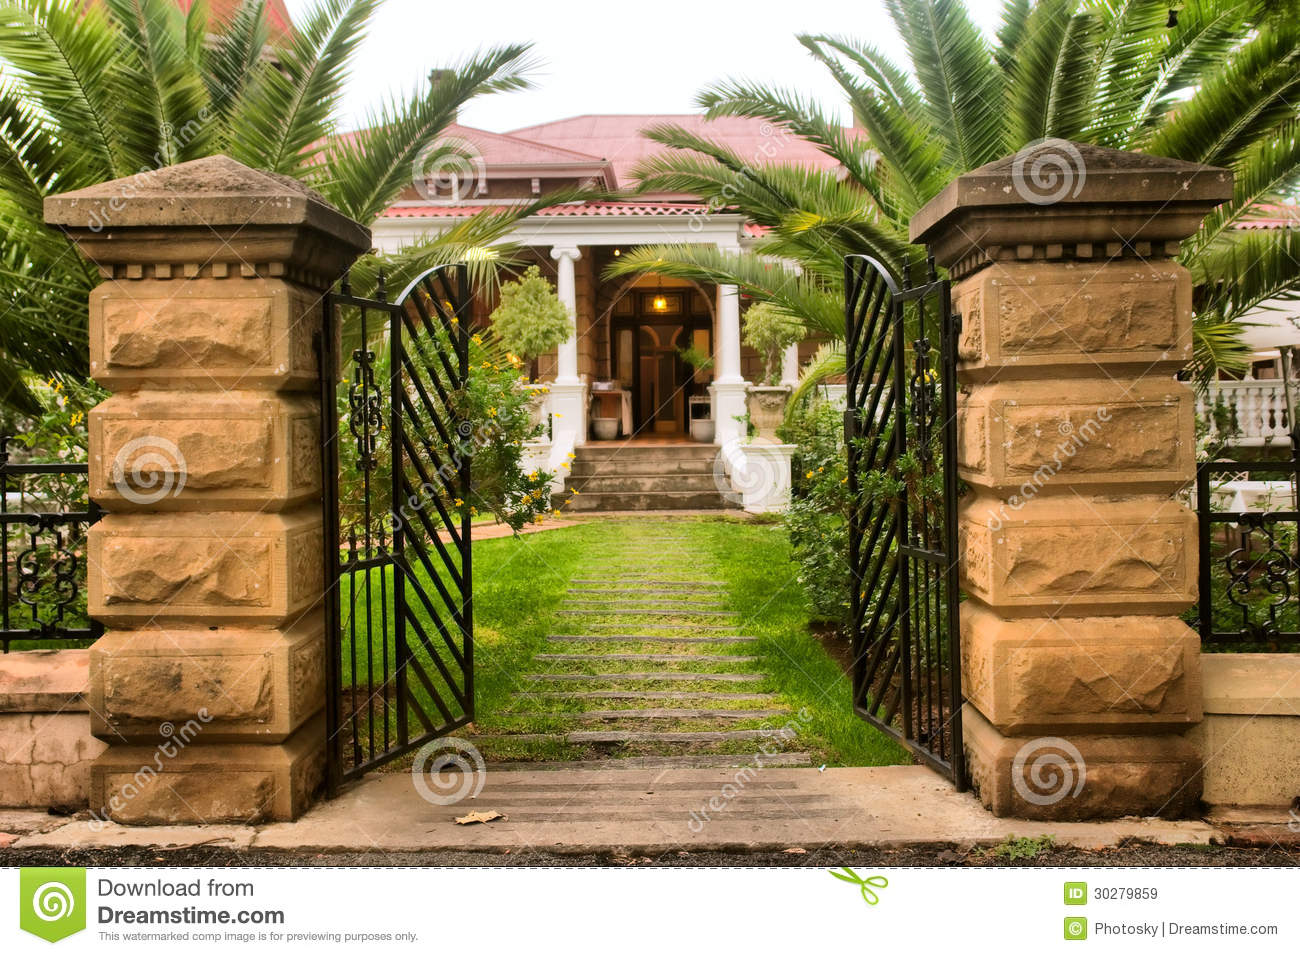 Royalty Free Stock Images Entrance Gate Beautiful Old House Shot South Africa Image30279859 on Iron Entrance Gates Designs